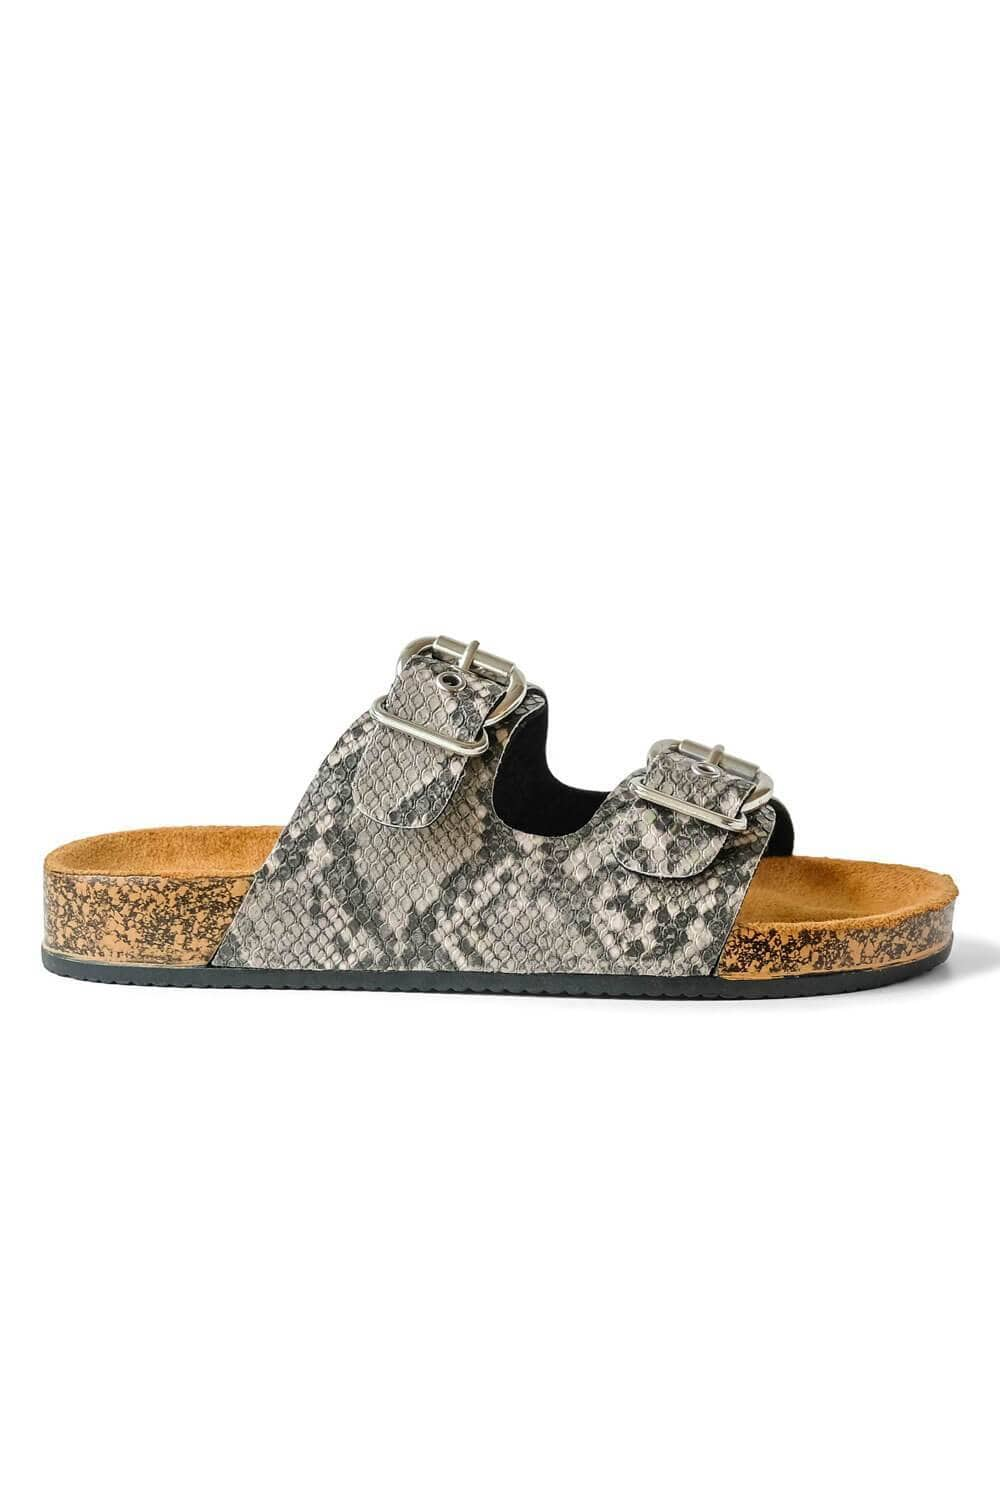 Millie Snakeskin Sandal Grey side - MILK MONEY